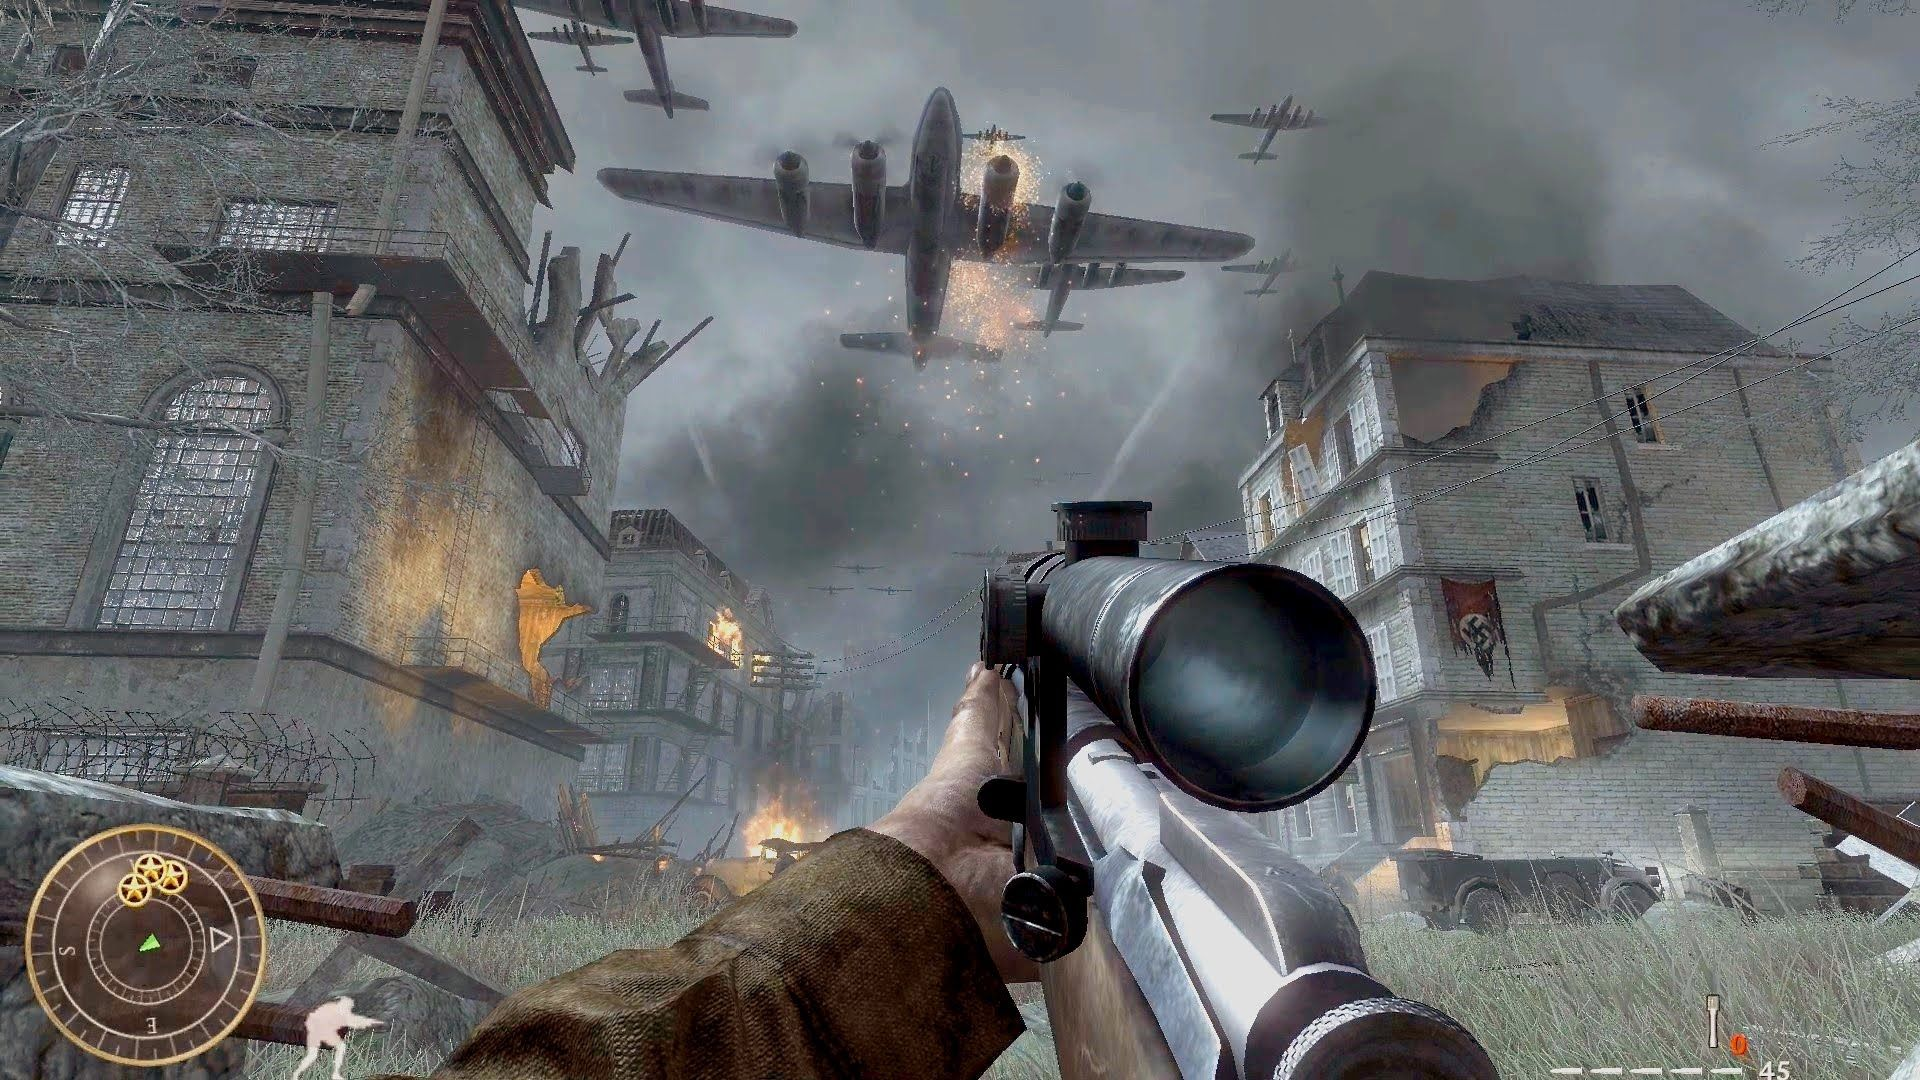 Call of Duty World at War - Vendetta Sniper Mission Gameplay ...